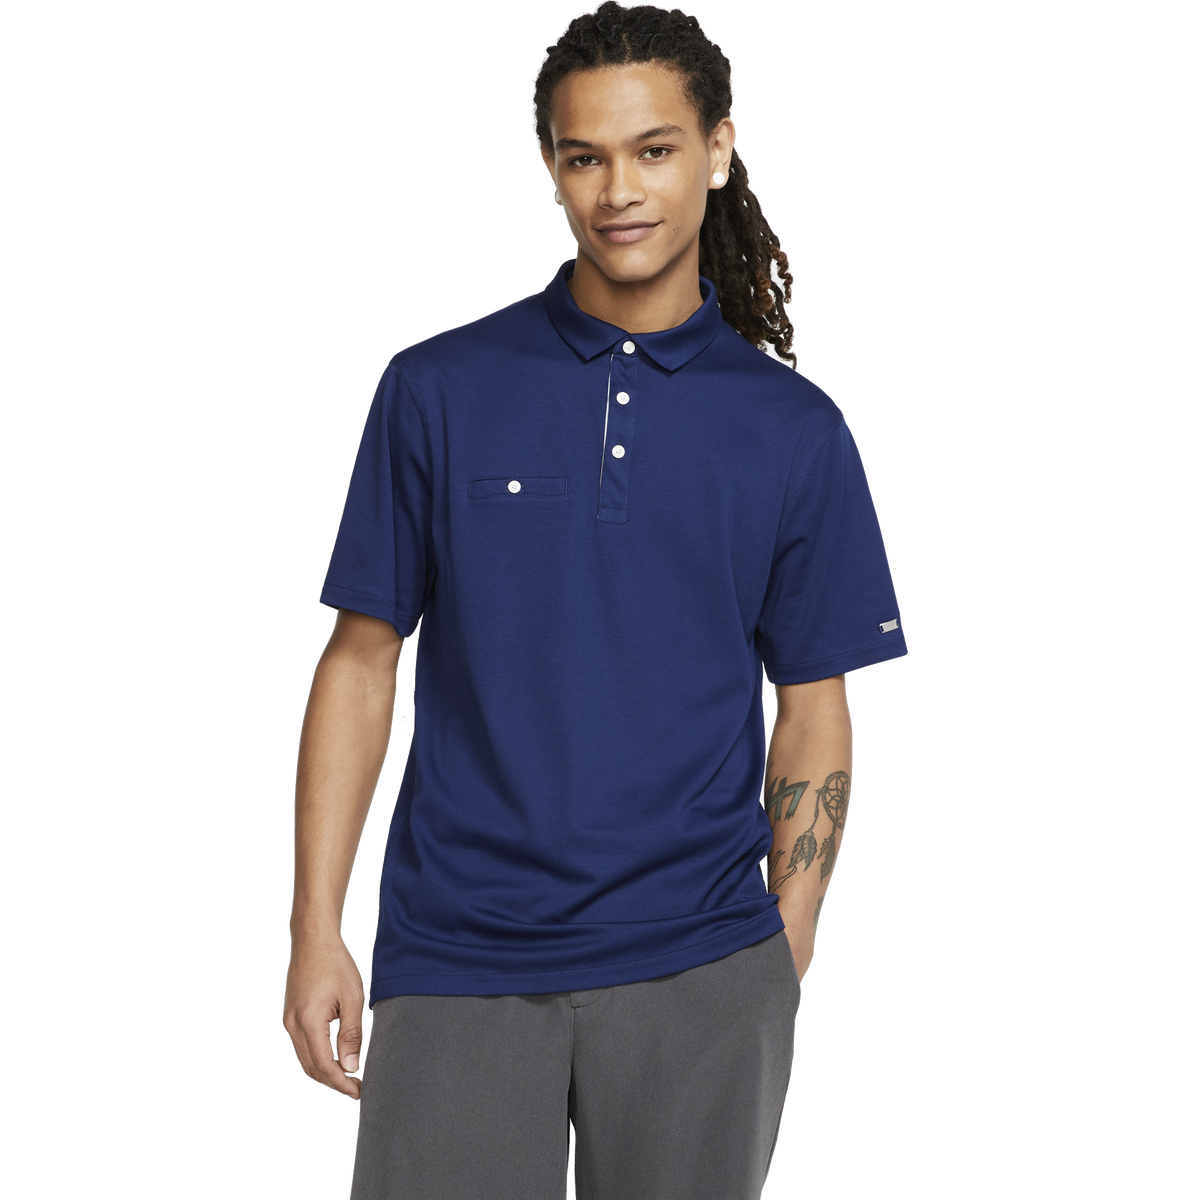 brand new 844db 5fc29 Images. Dri-FIT Player Pocket Solid Golf Polo